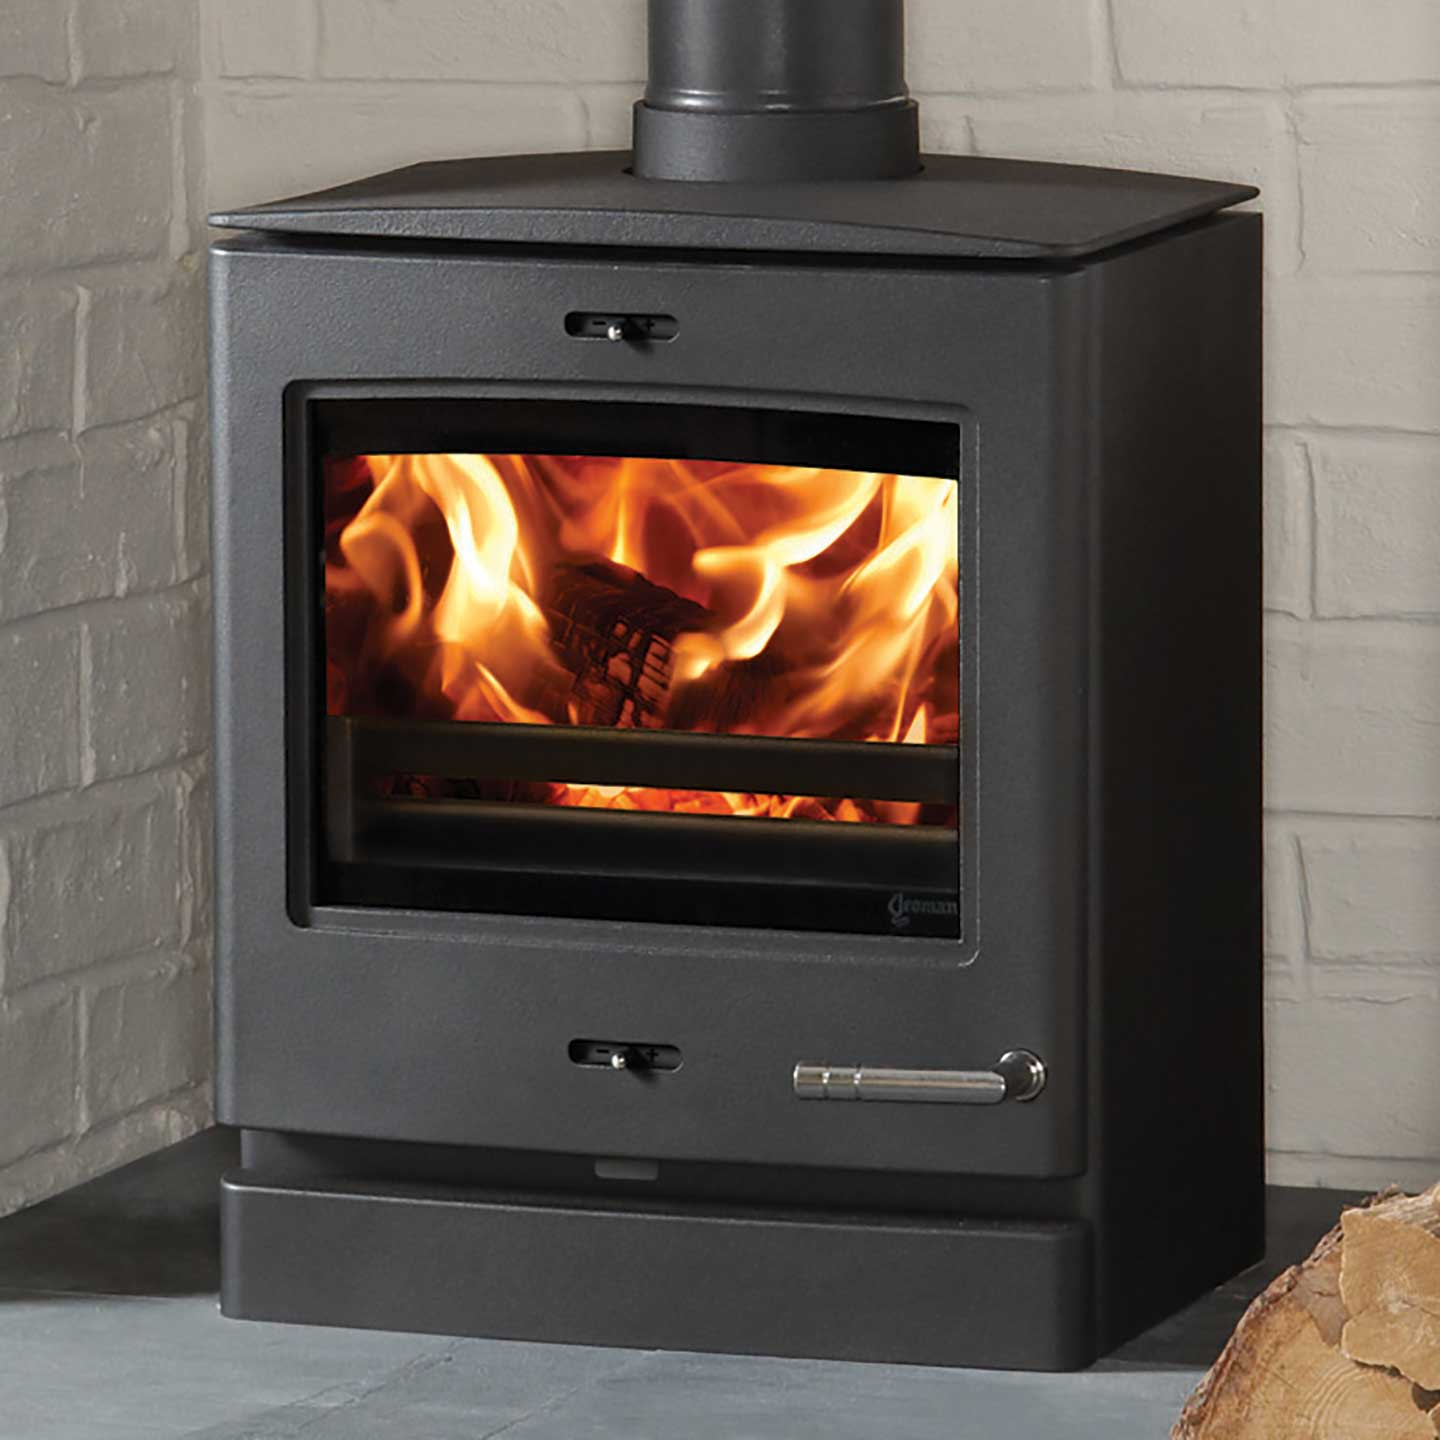 Yeoman Cl5 Multi Fuel 4 9kw Stove The Stove Site